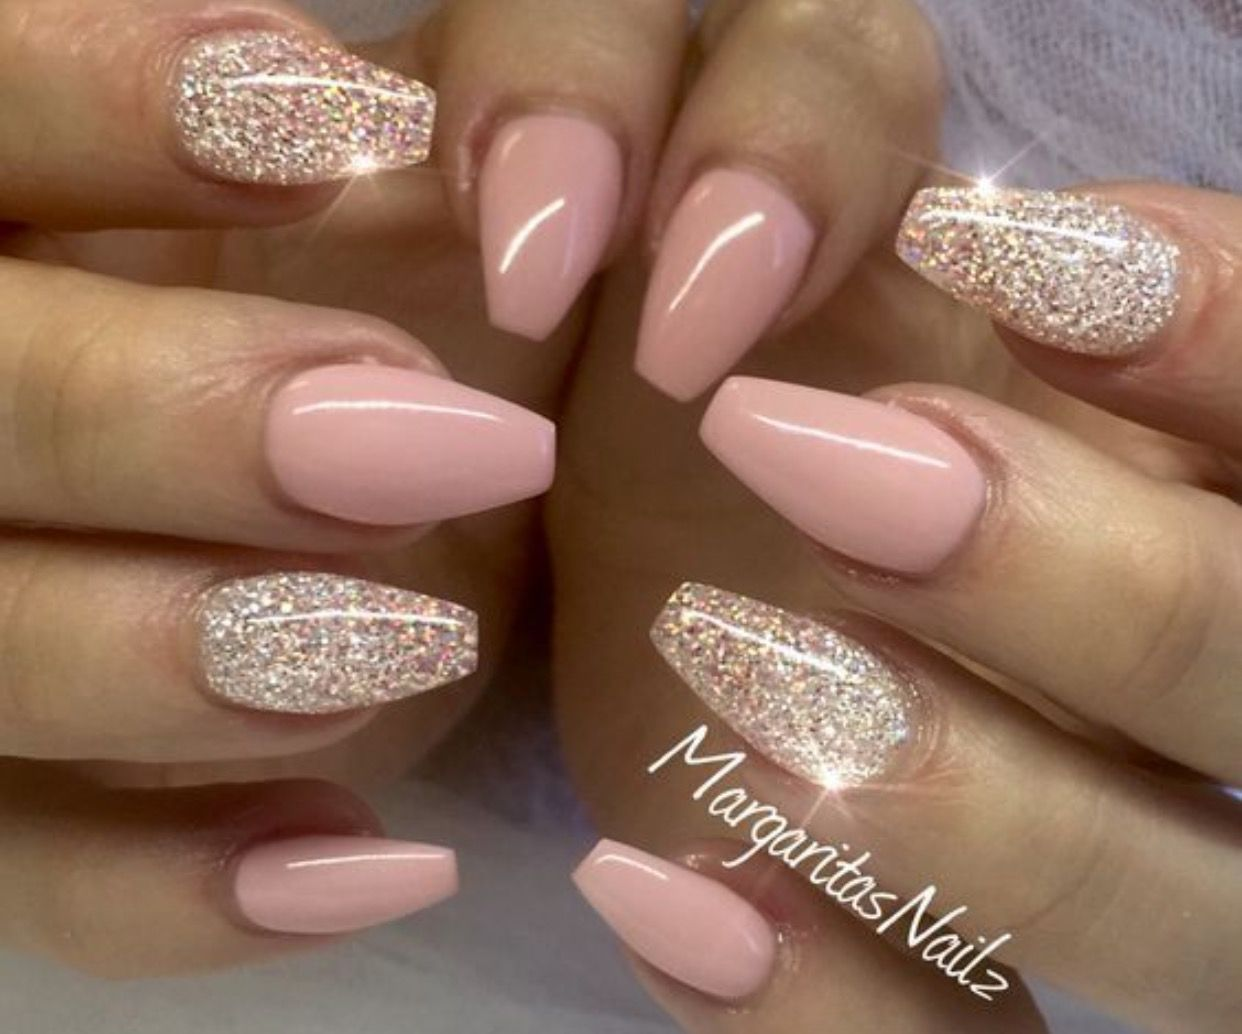 Nehtiky Nehty Pinterest Makeup Manicure And Nail Nail